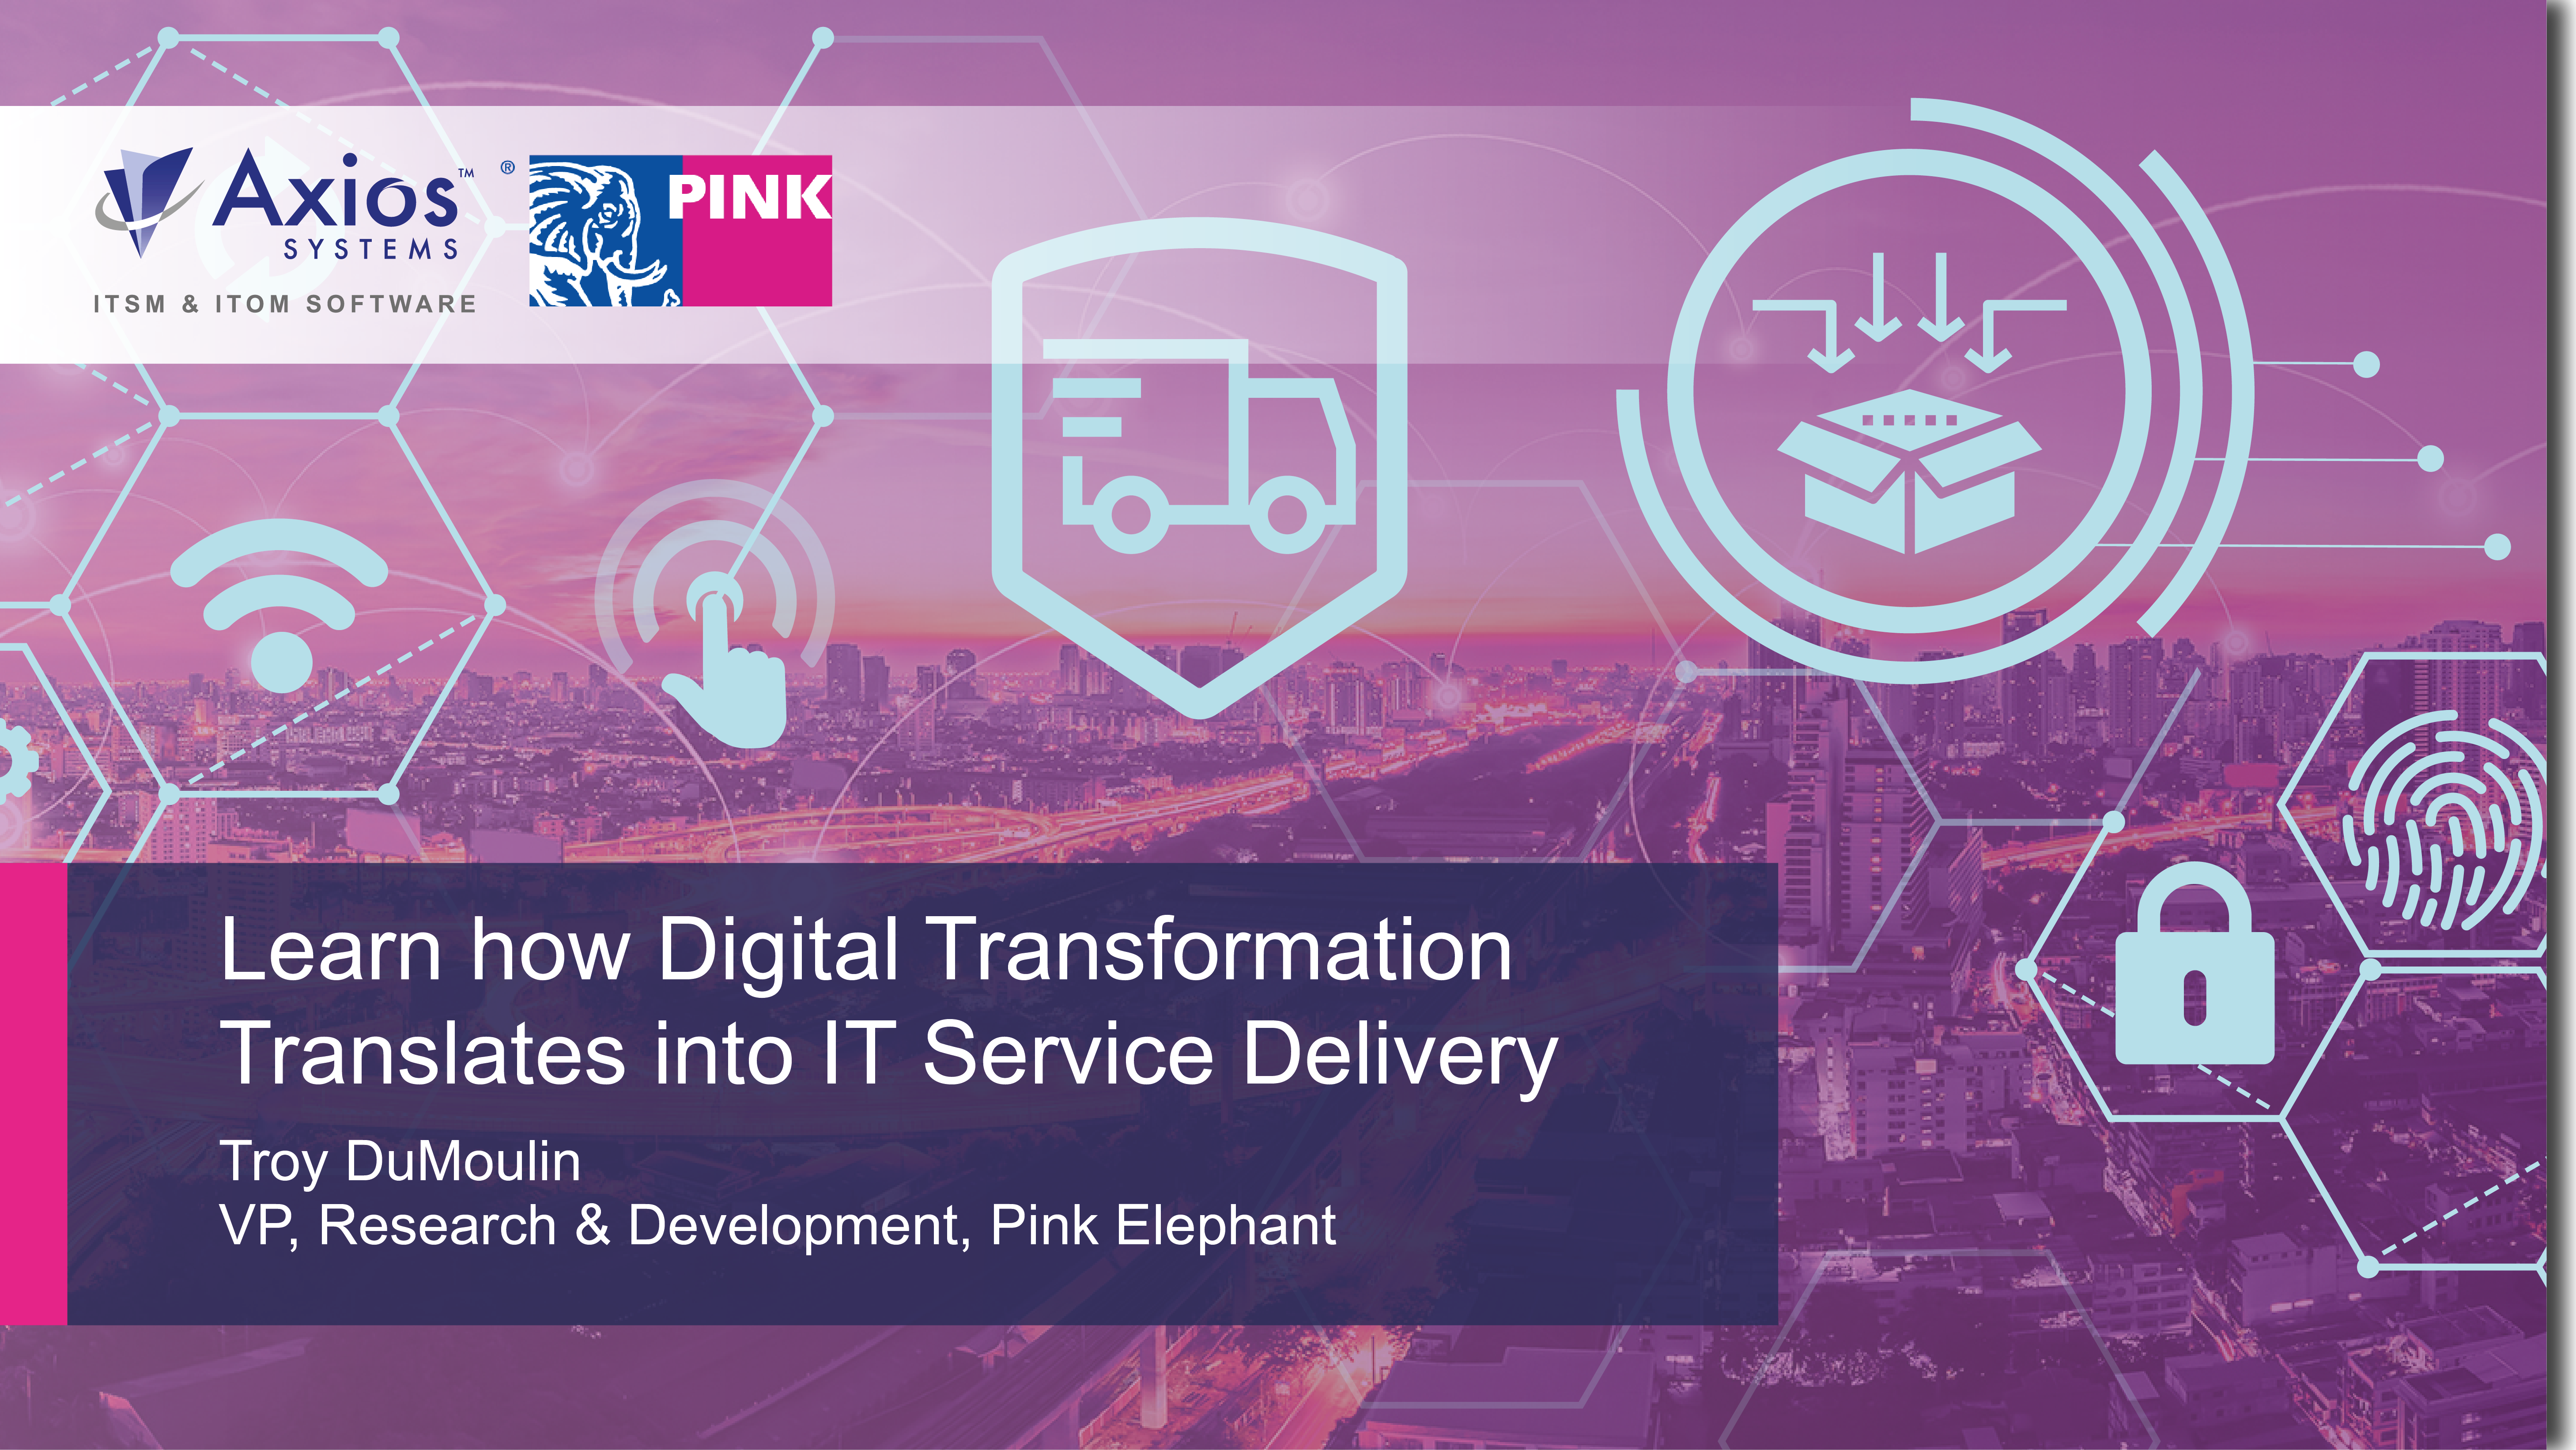 Learn how Digital Transformation Translates into IT Service Delivery